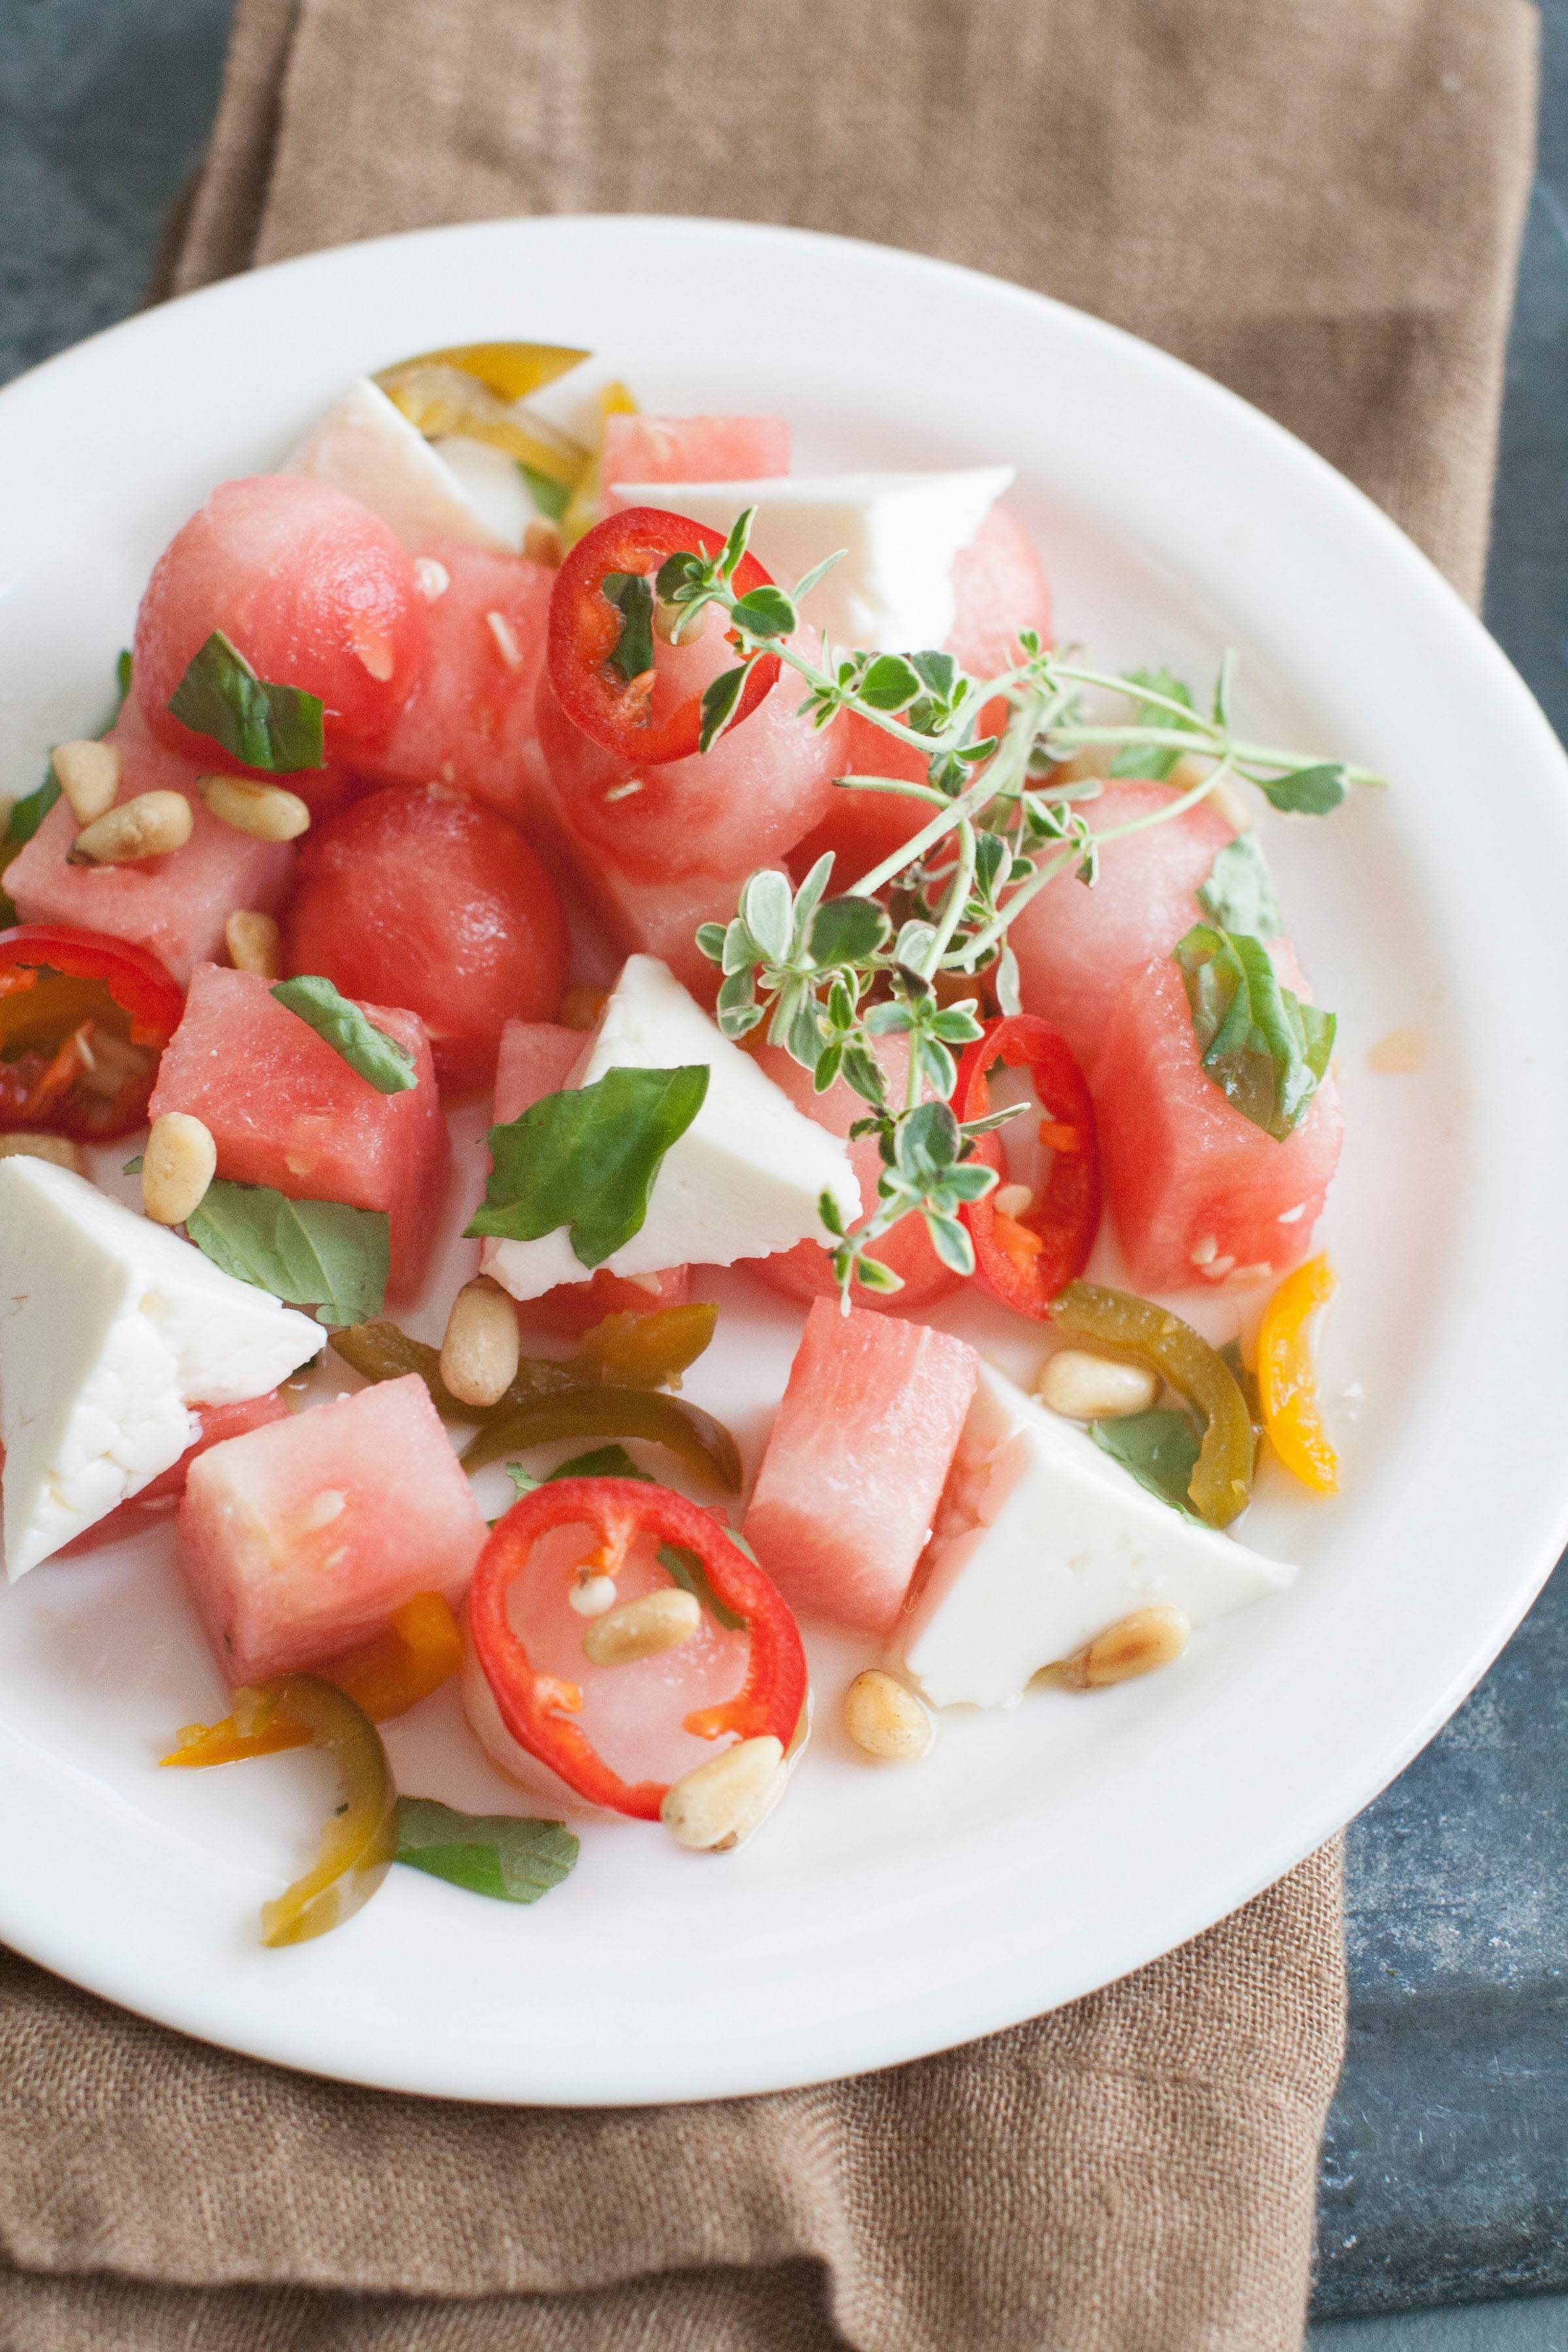 Watermelon can handle a bit of spicy and partners well with feta and basil for a refreshing salad.